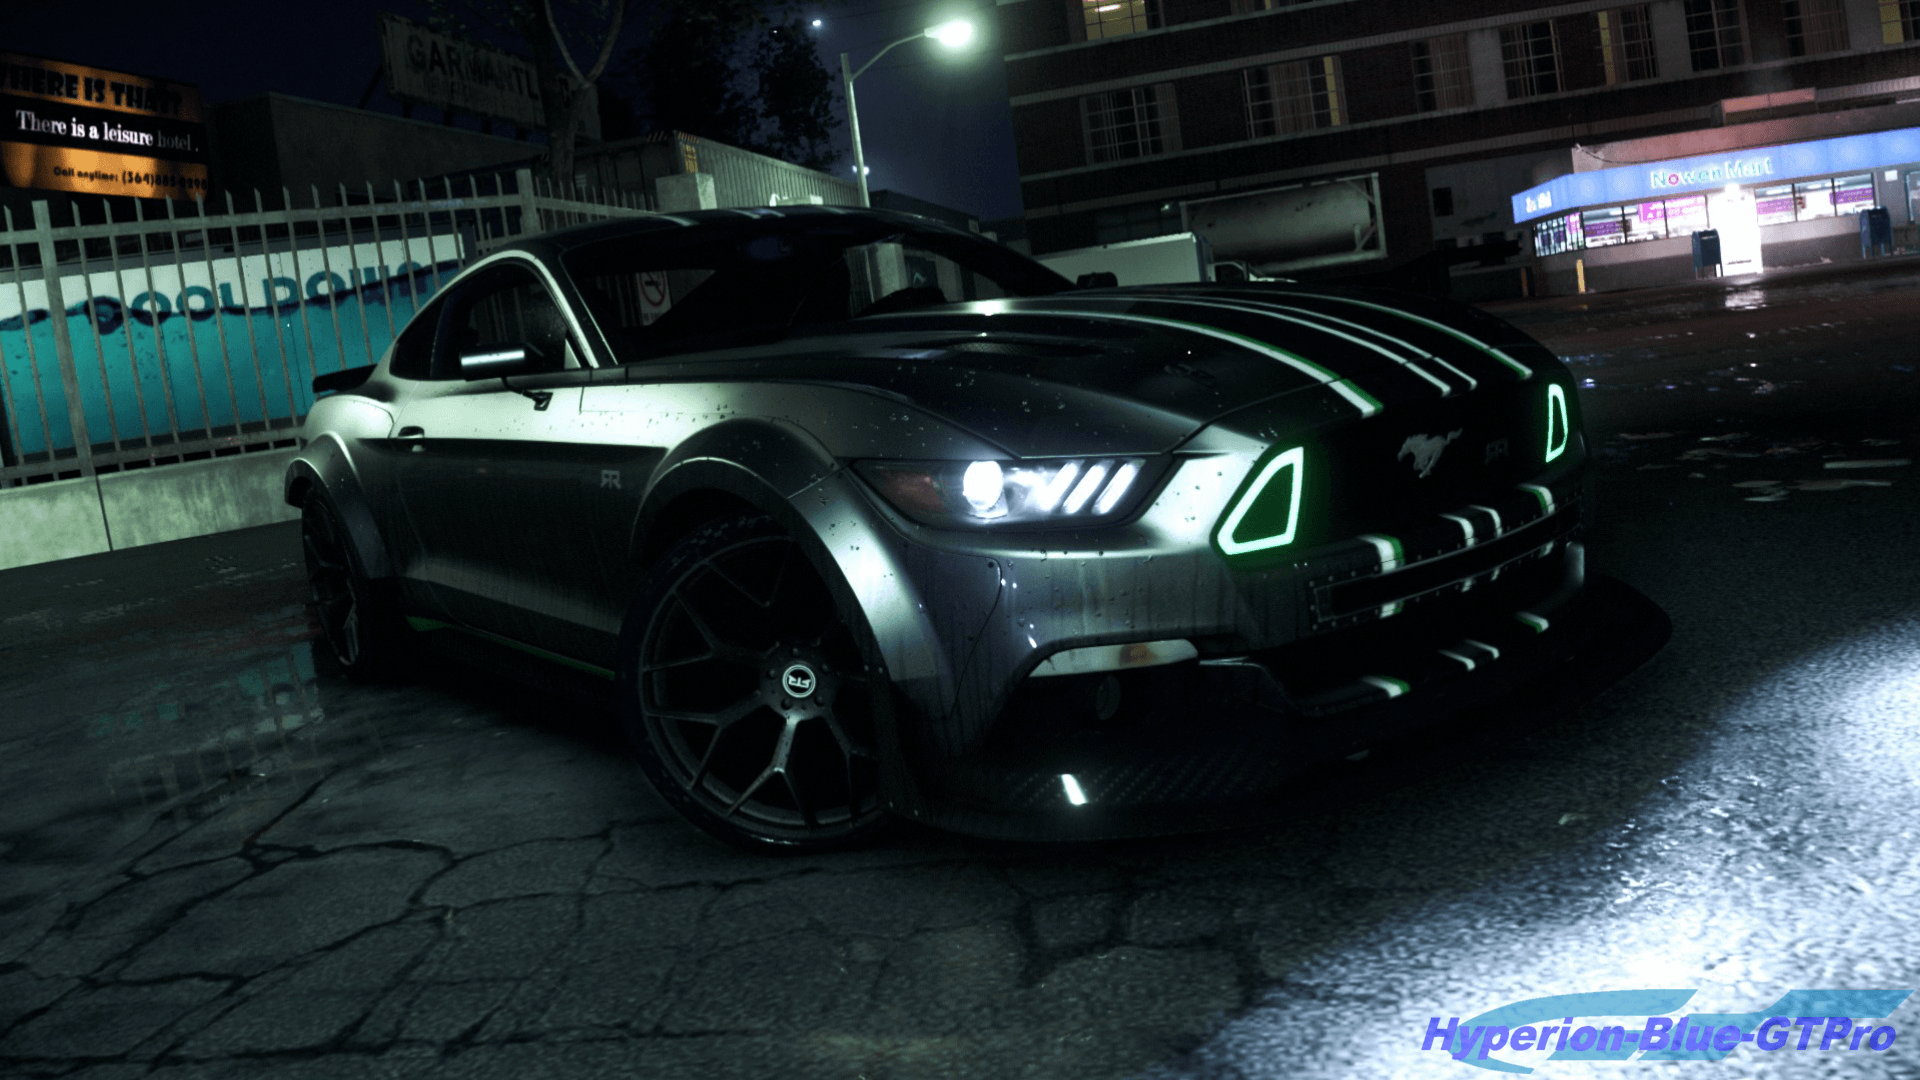 Ford Mustang Is Ready For NFS Payback By Hyperion Blue GTPro On